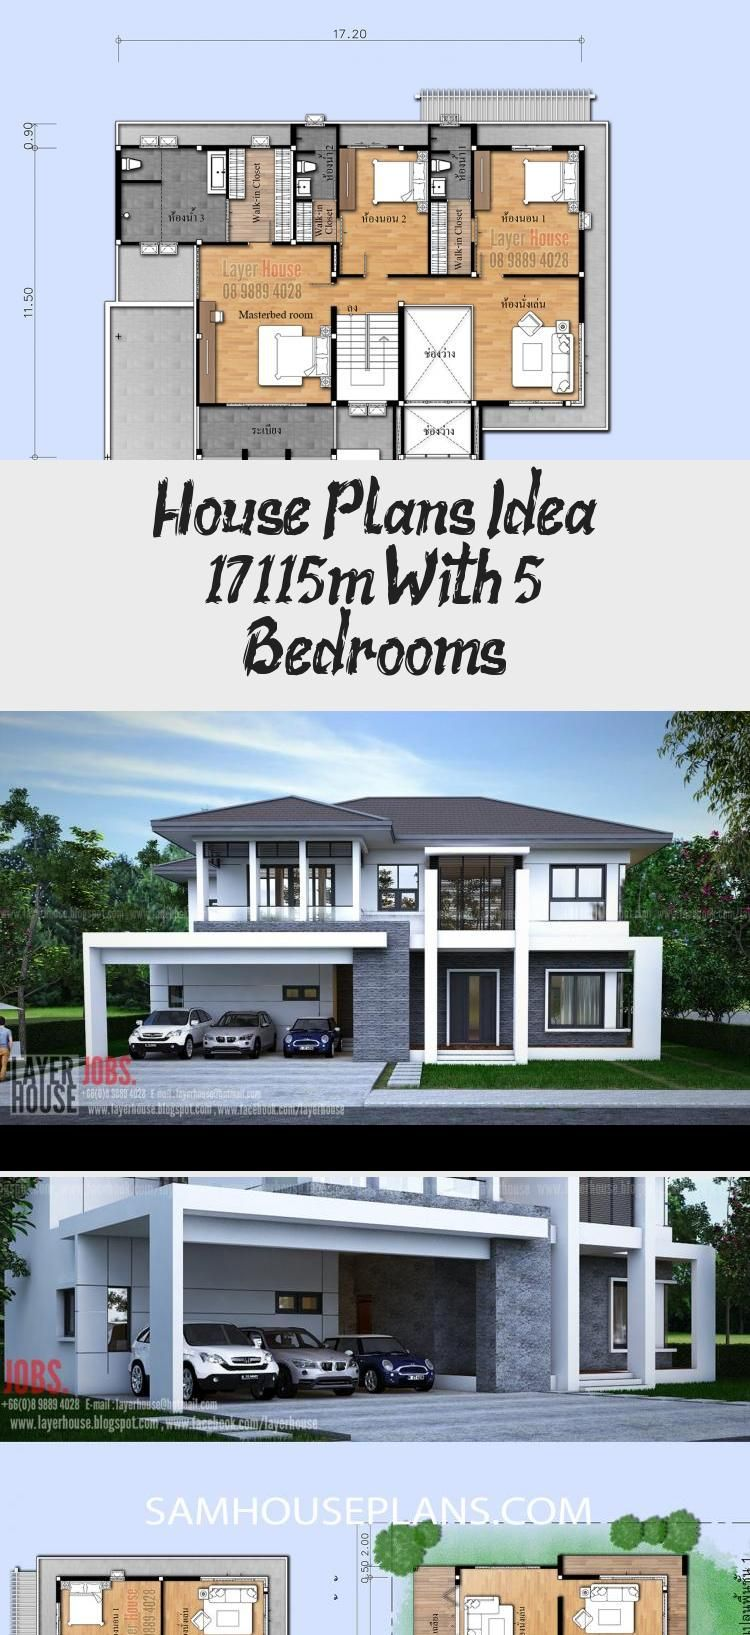 House Plans Idea 17x11 5m With 5 Bedrooms Sam House Plans Modernhouseplansonestory Asianmodernhousepla In 2020 Square House Plans House Plans Craftsman House Plans